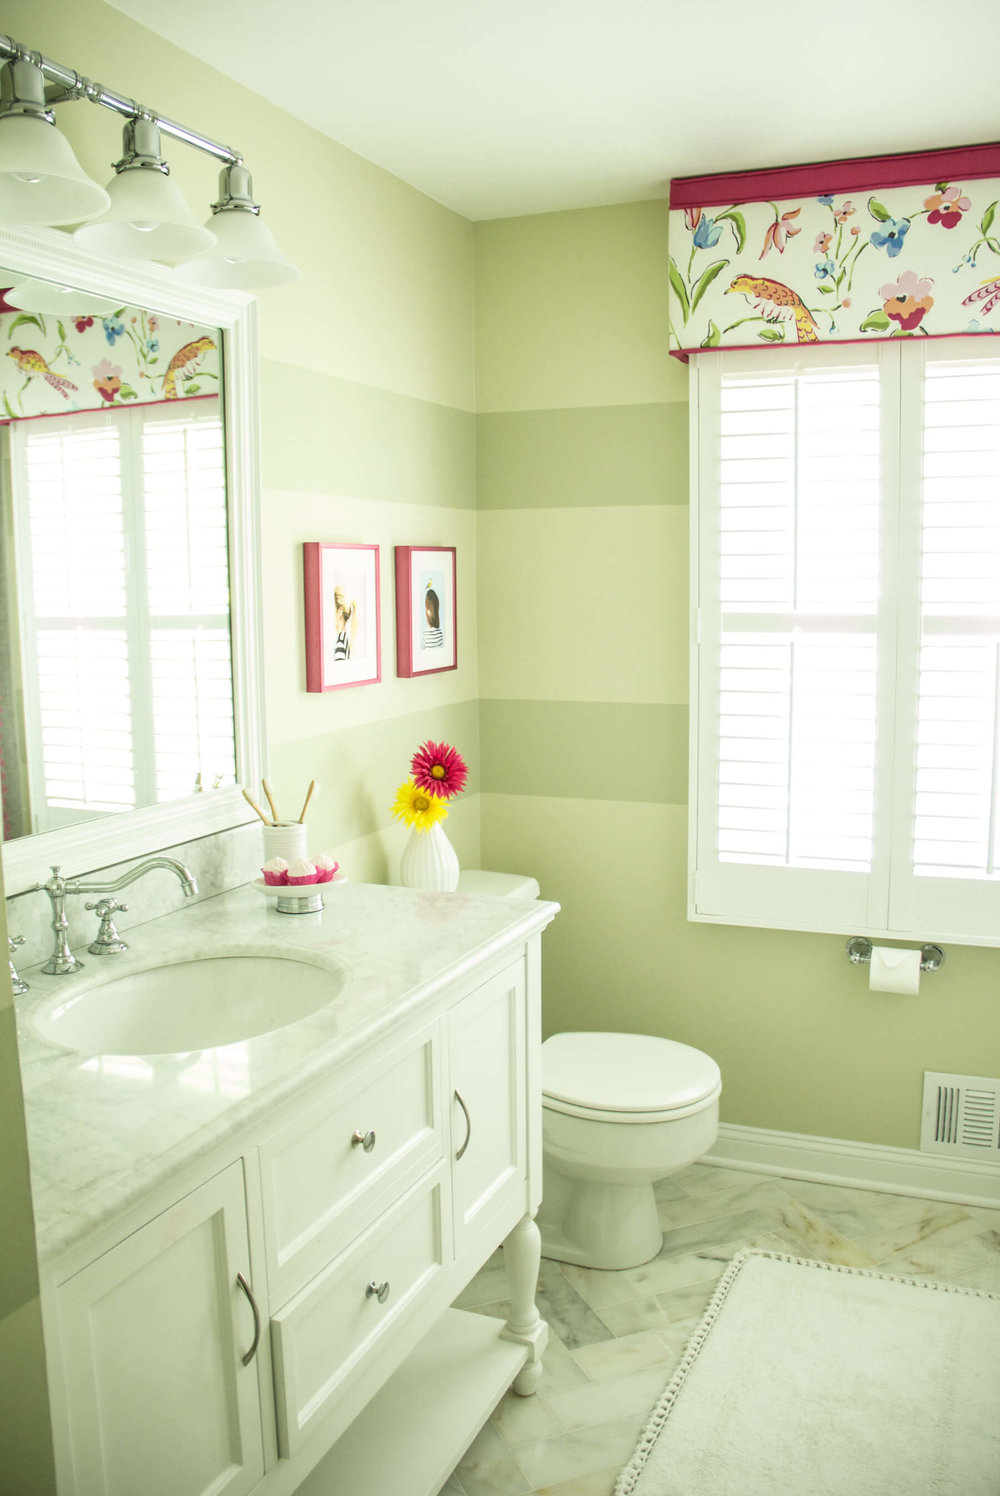 children-kids-bathroom-interior-design-remodel-renovate-virginia-1.jpg